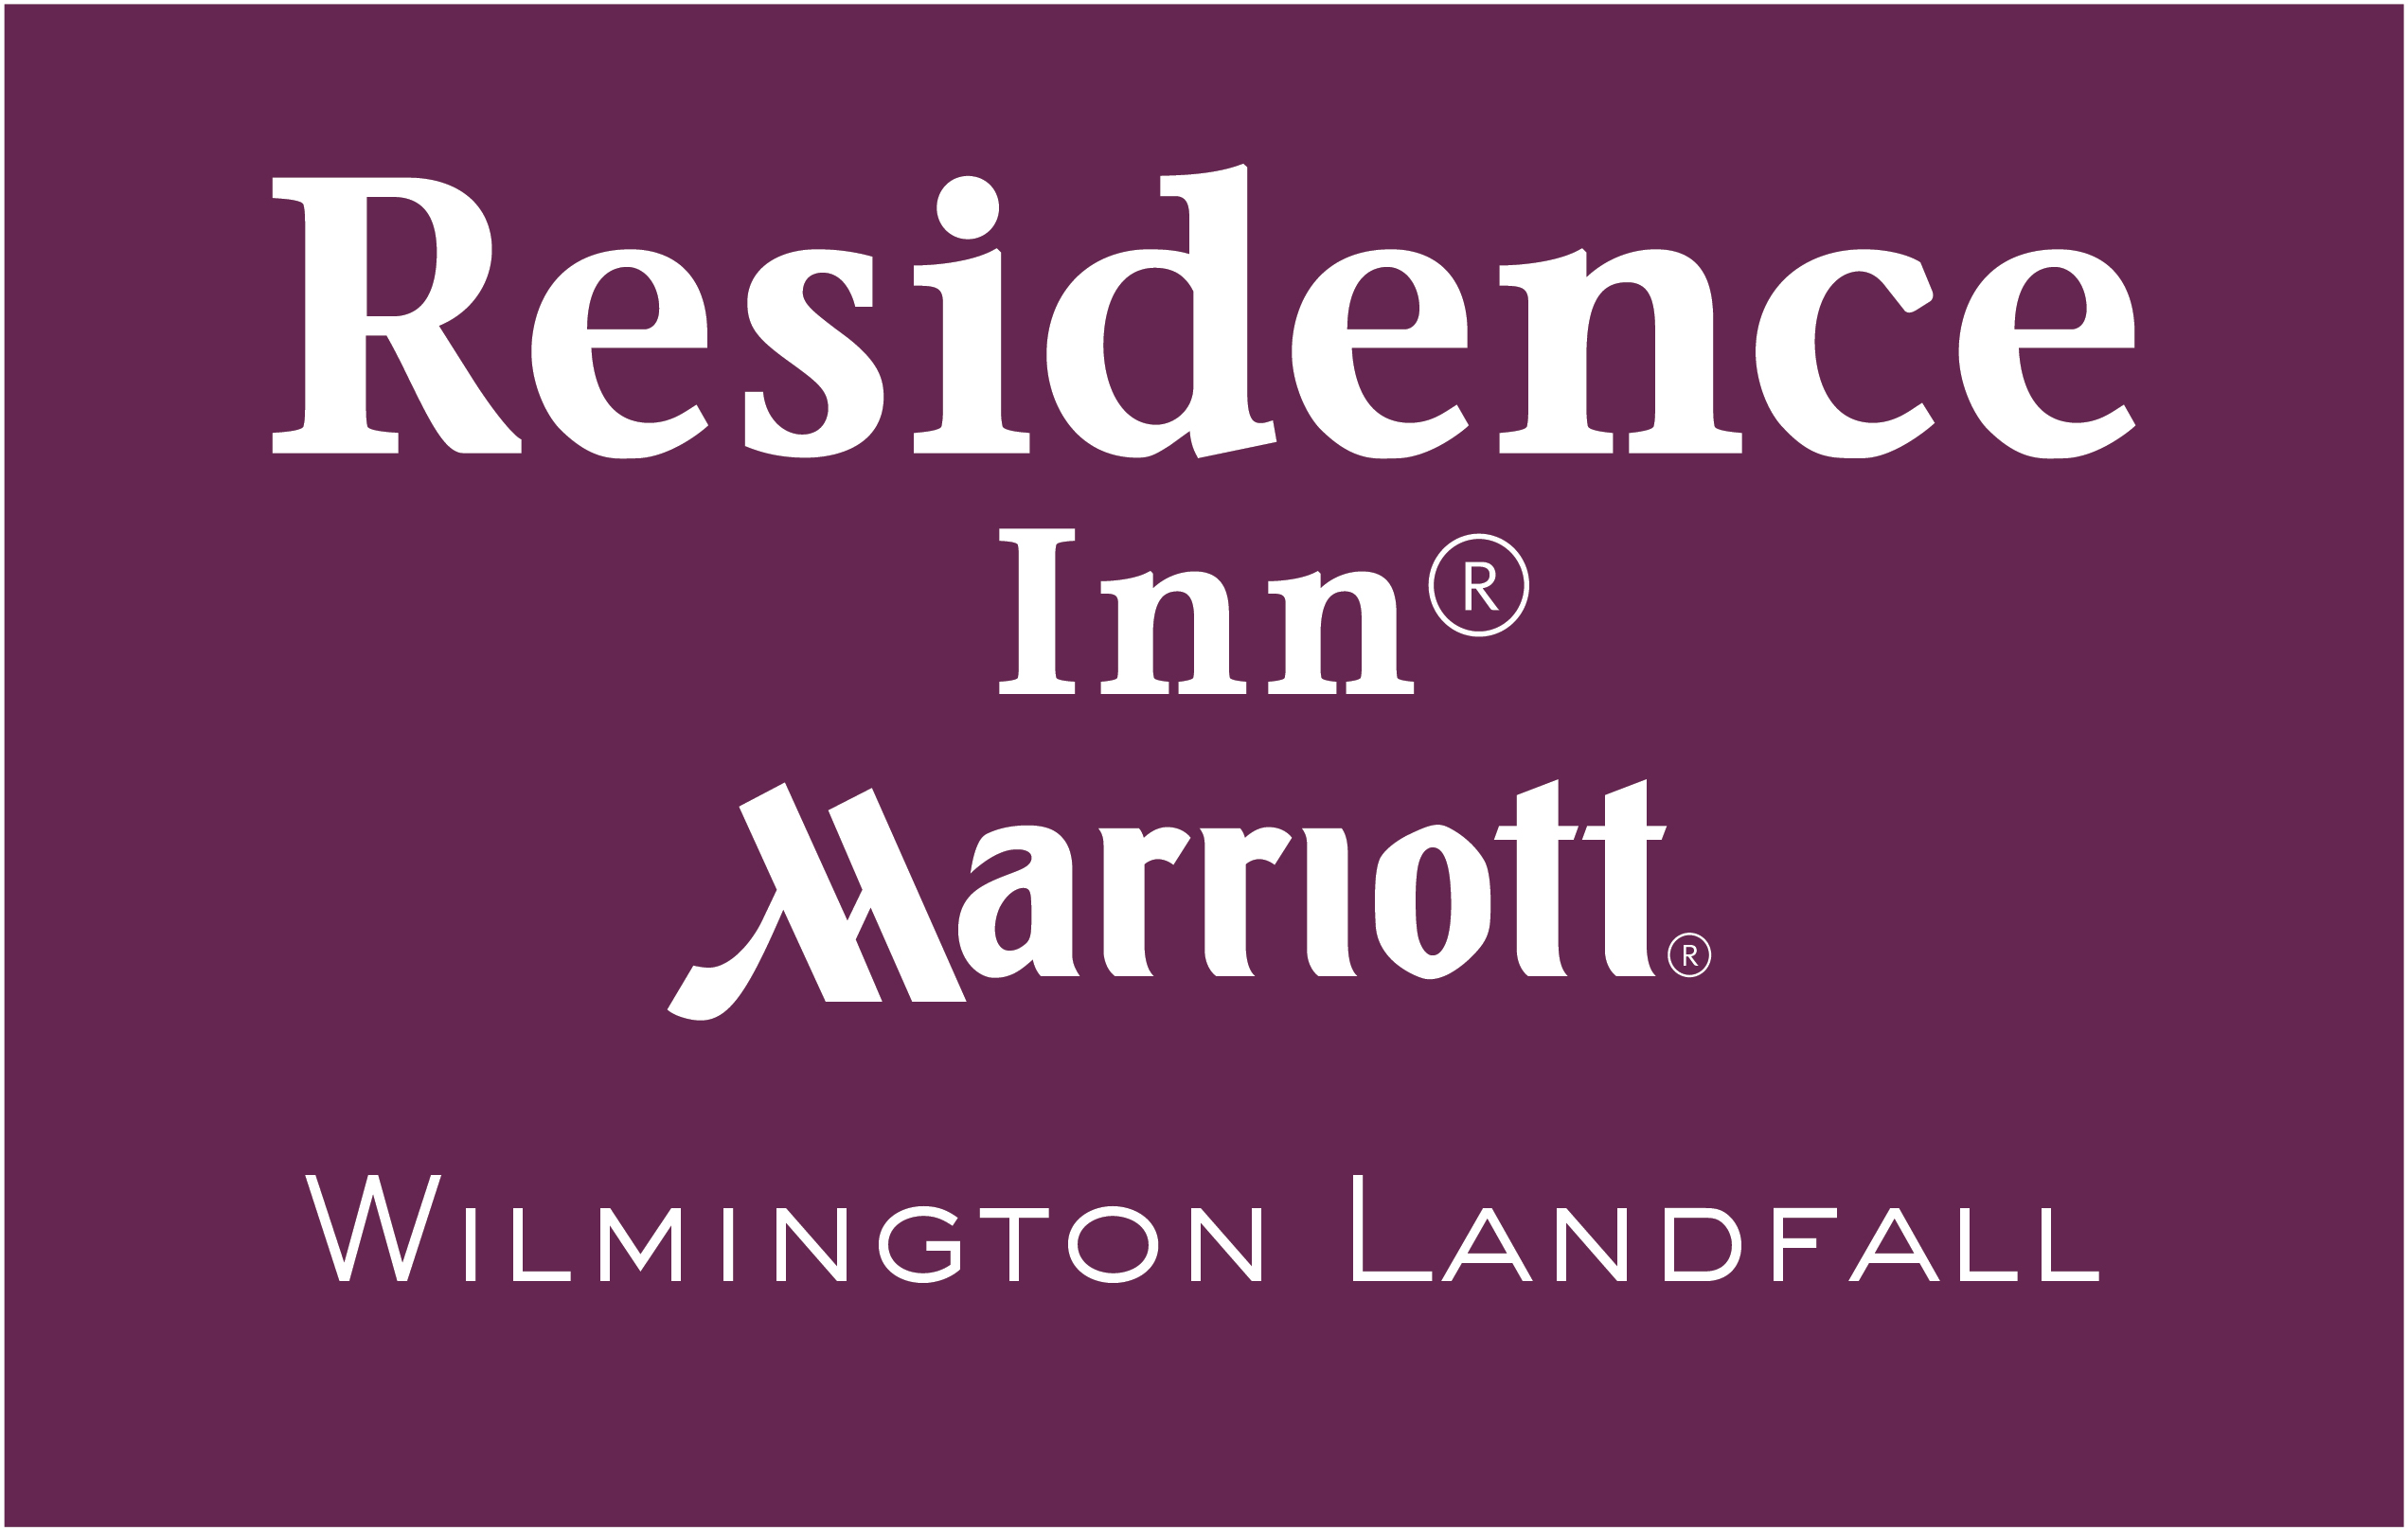 Residence Inn Marriott Landfall copy